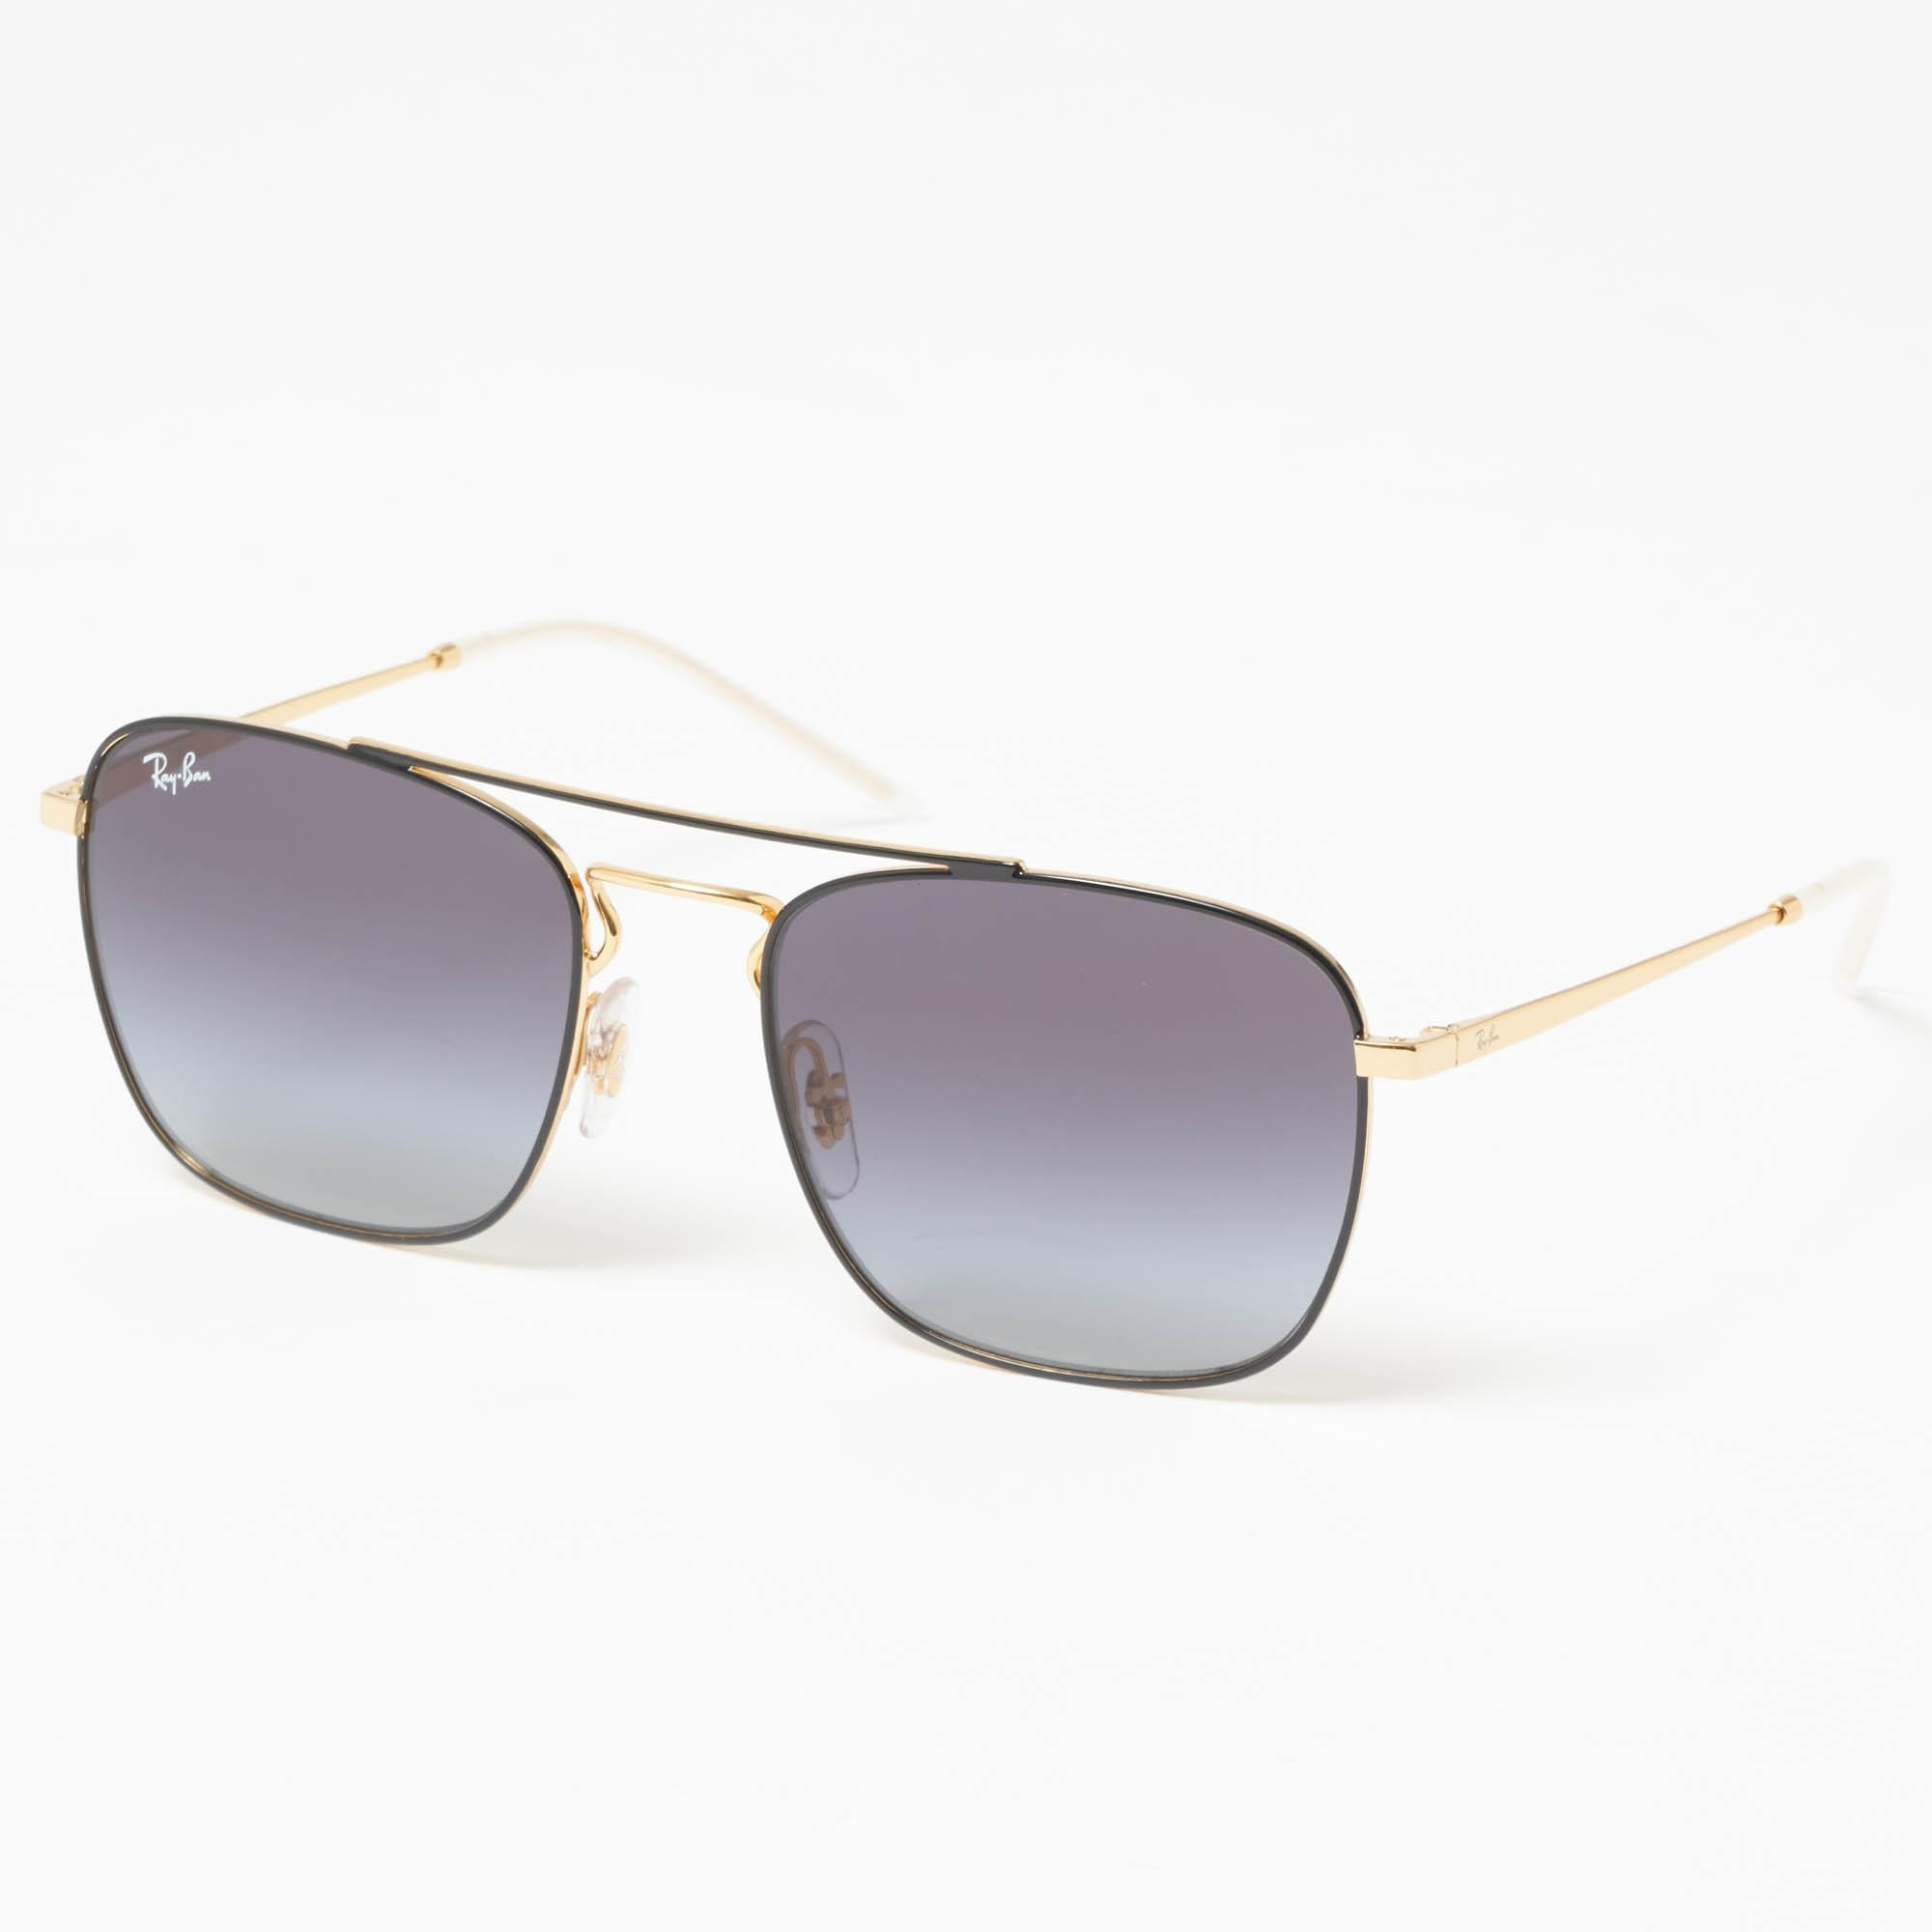 417fefce471 Lyst - Ray-Ban Gold Rb3588 Sunglasses - Grey Gradient Lenses in ...